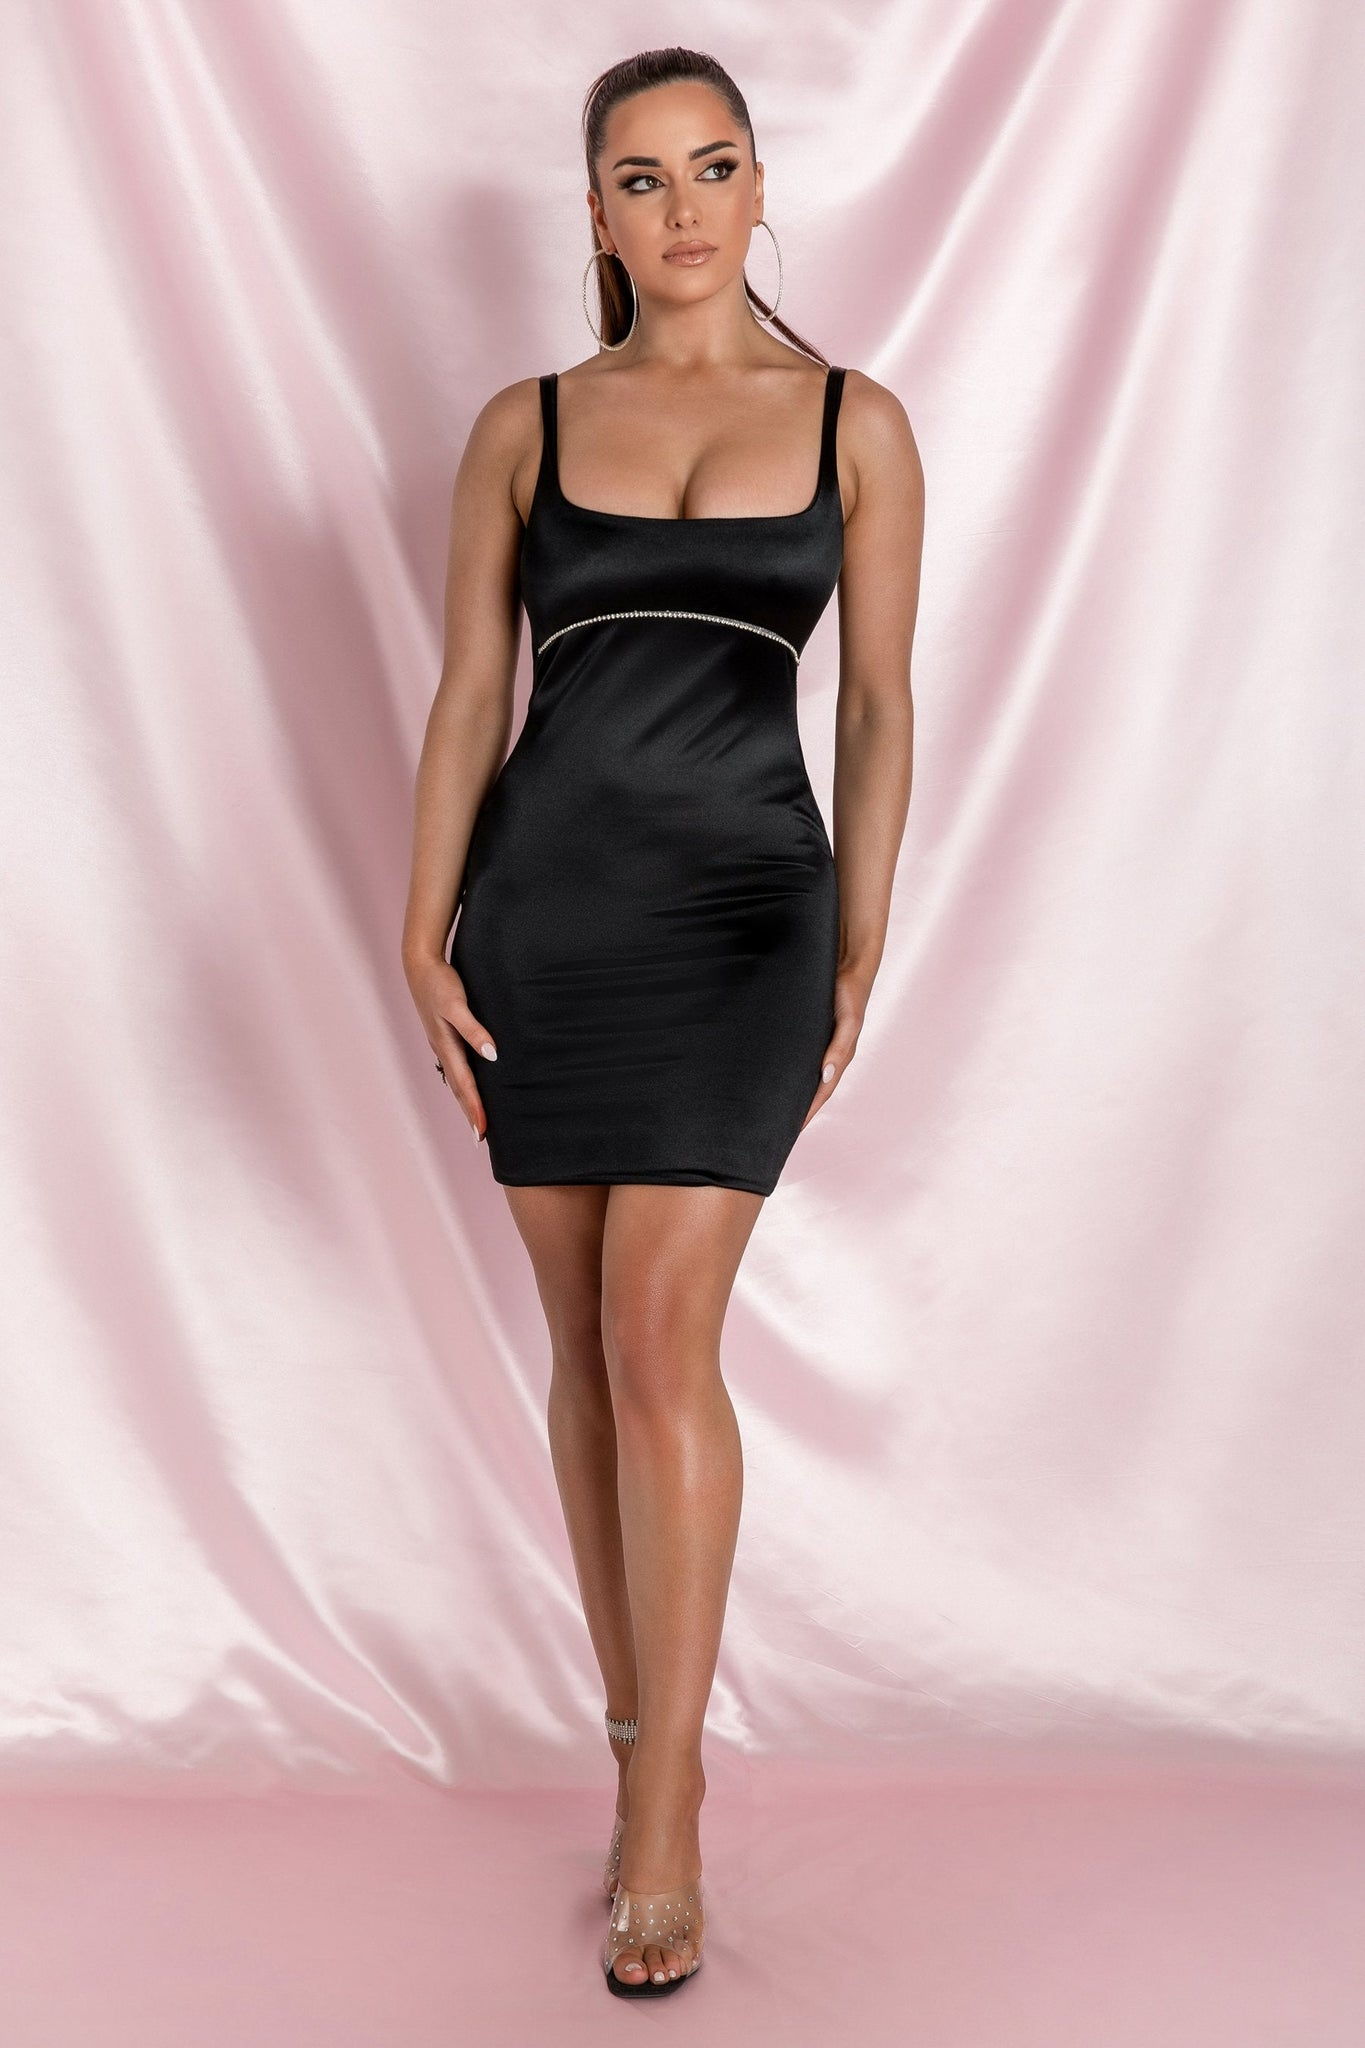 Mallory Diamante Underbust Trim Mini Dress - Black - MESHKI